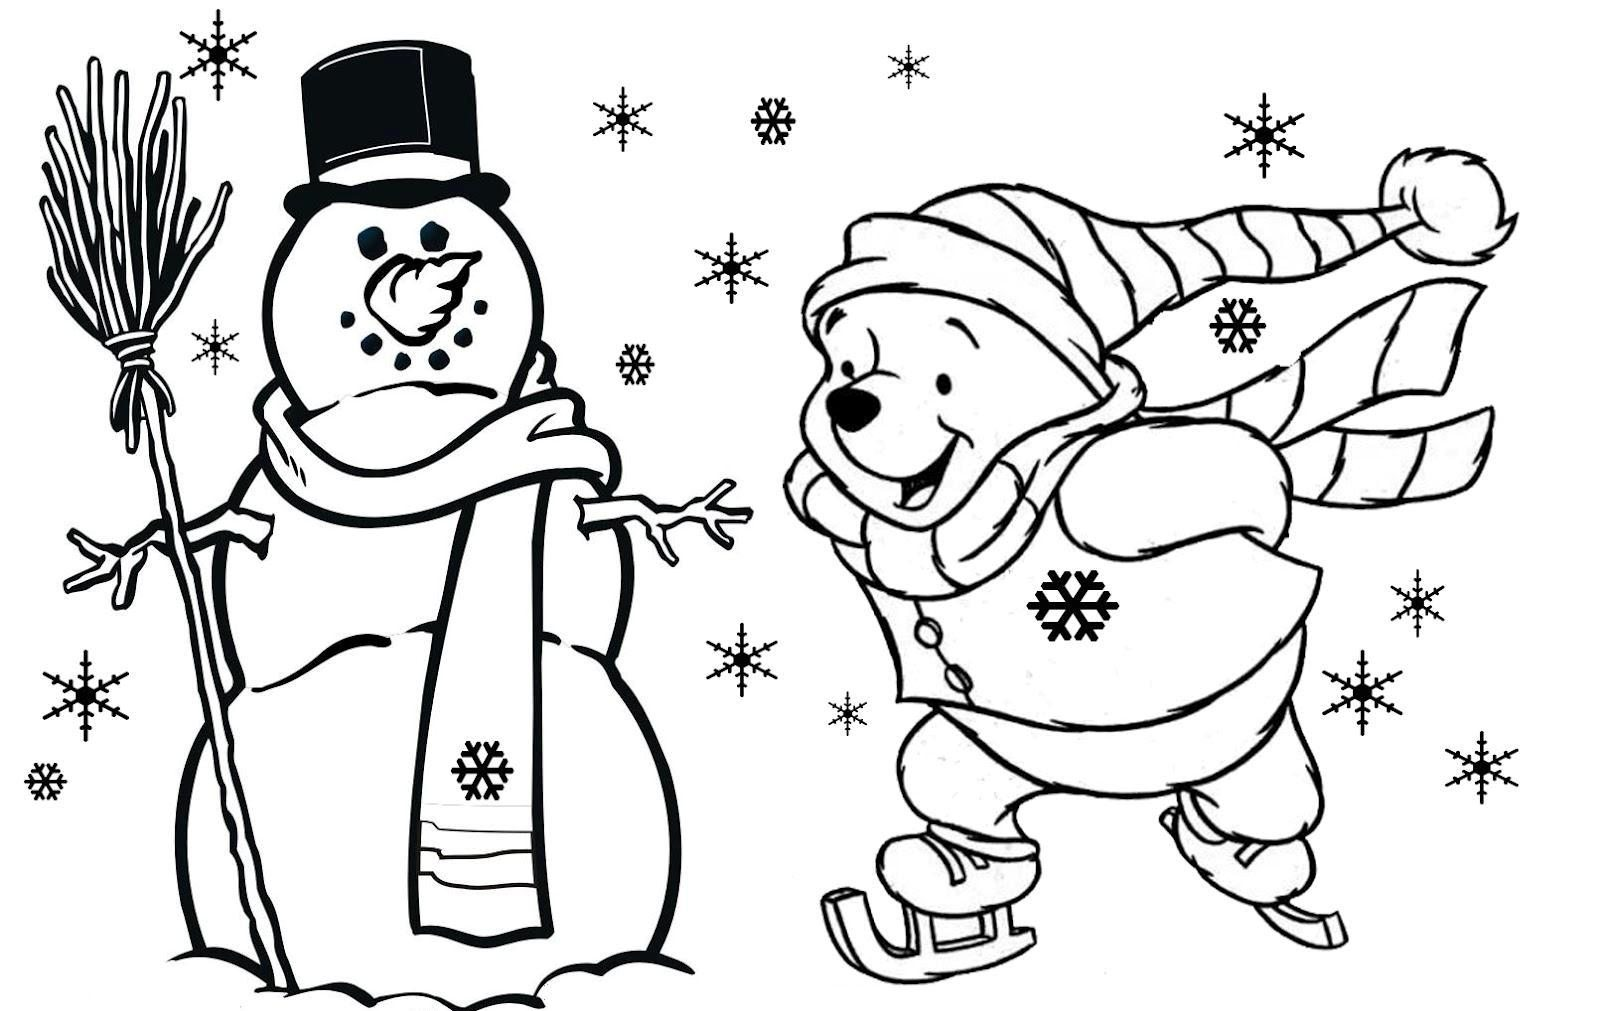 Christmas Free Coloring Pages Printable At Getdrawings Com